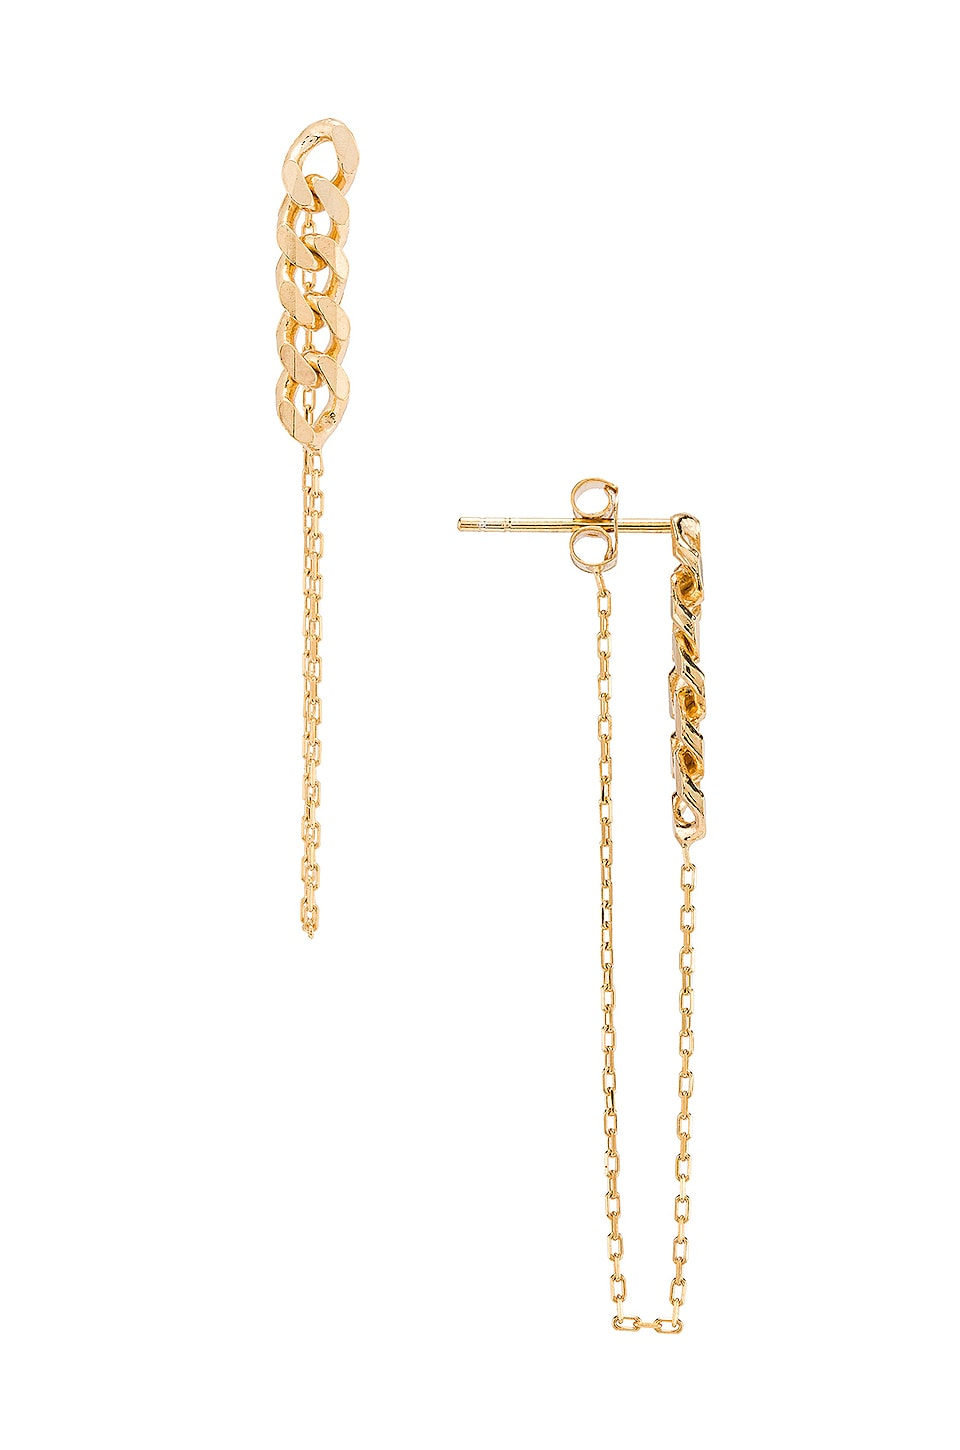 Natalie B Jewelry Lennox Chain Earring in Gold